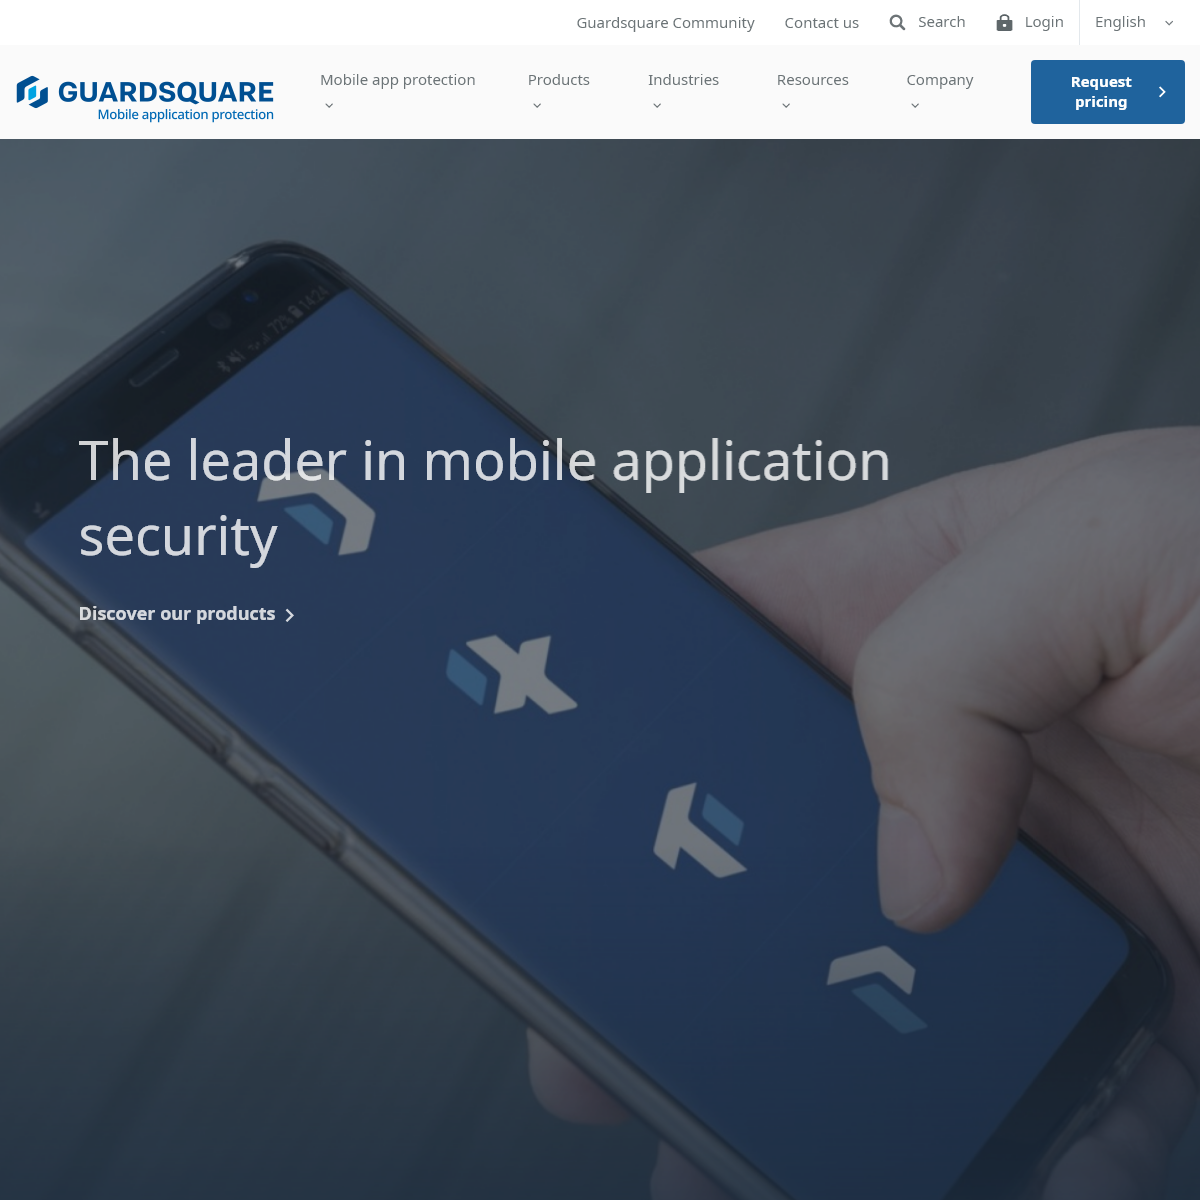 Guardsquare - The leader in mobile application security